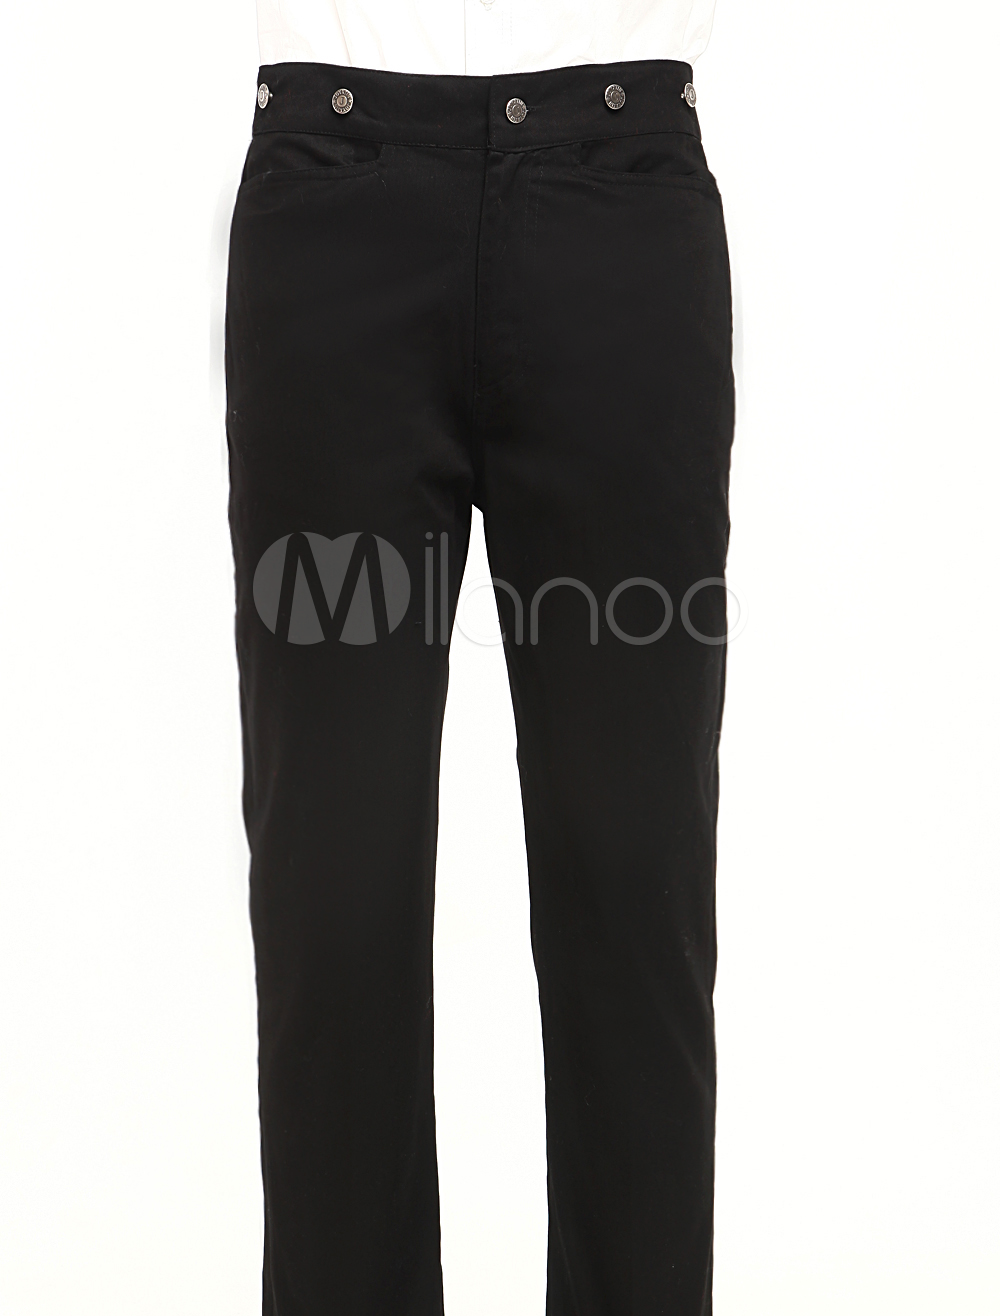 Classic Black Cotton Mens Steampunk Trousers $49.99 AT vintagedancer.com